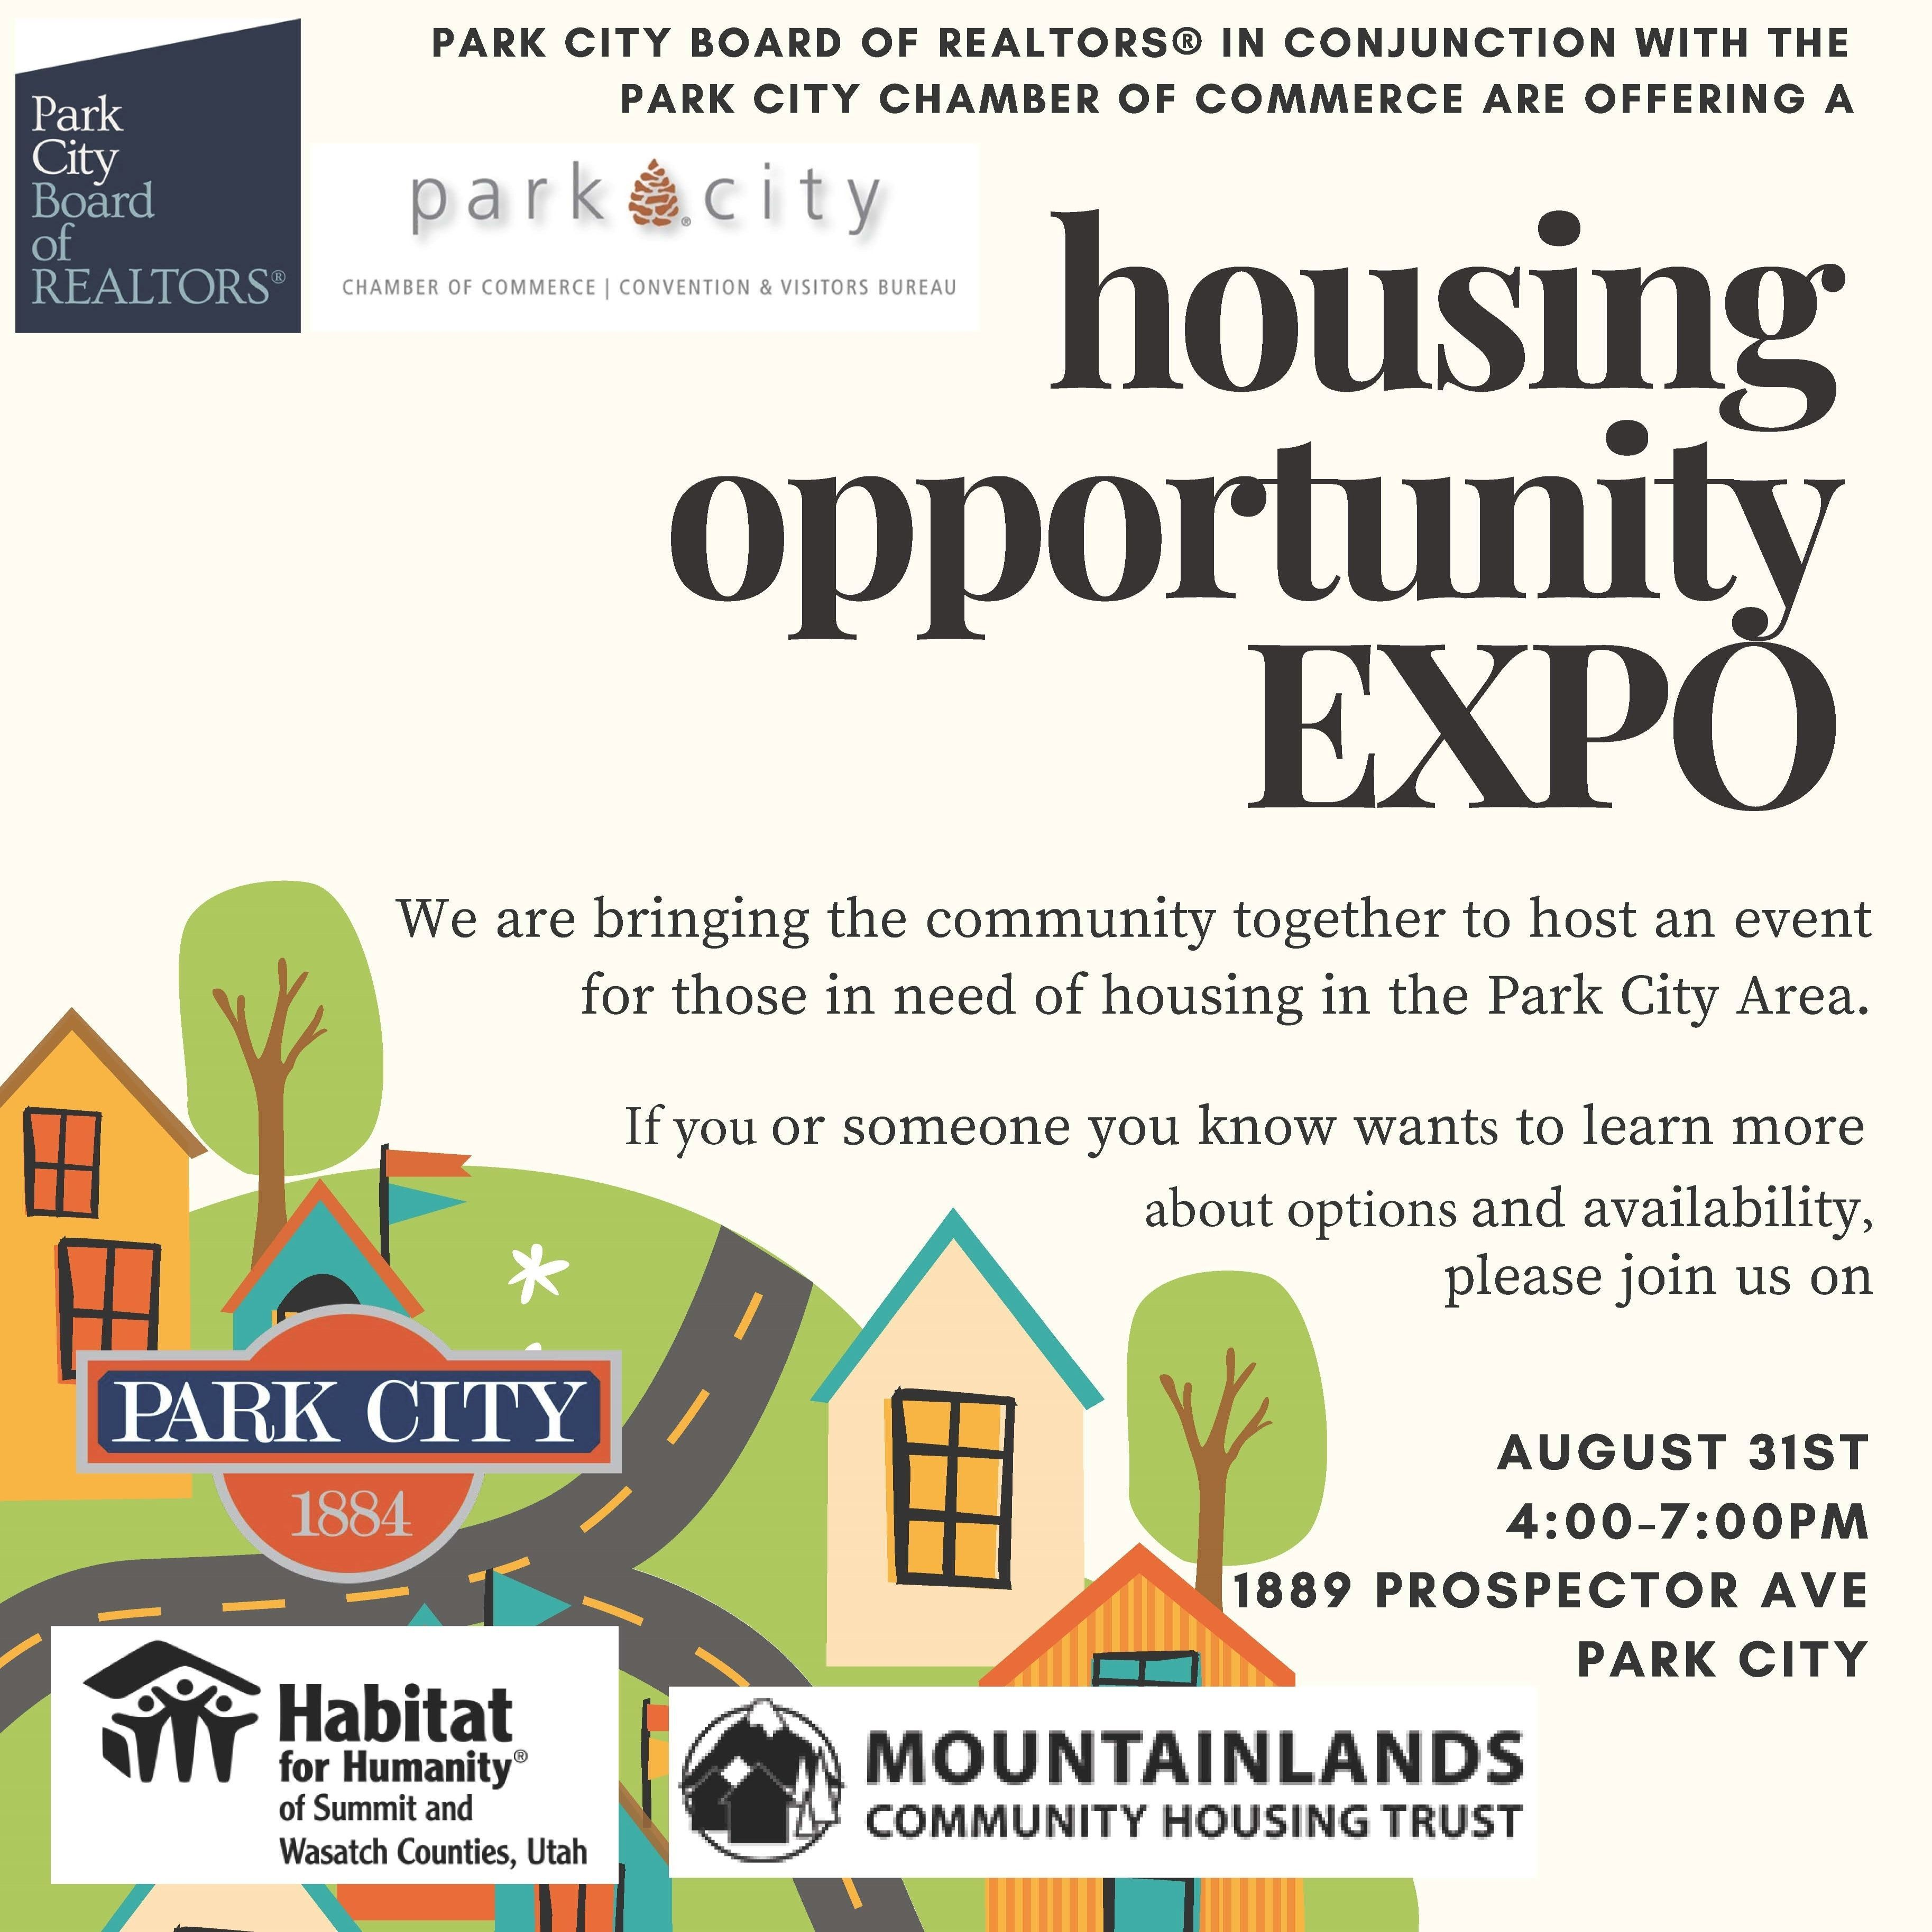 Habitat in the Housing Opportunity Expo